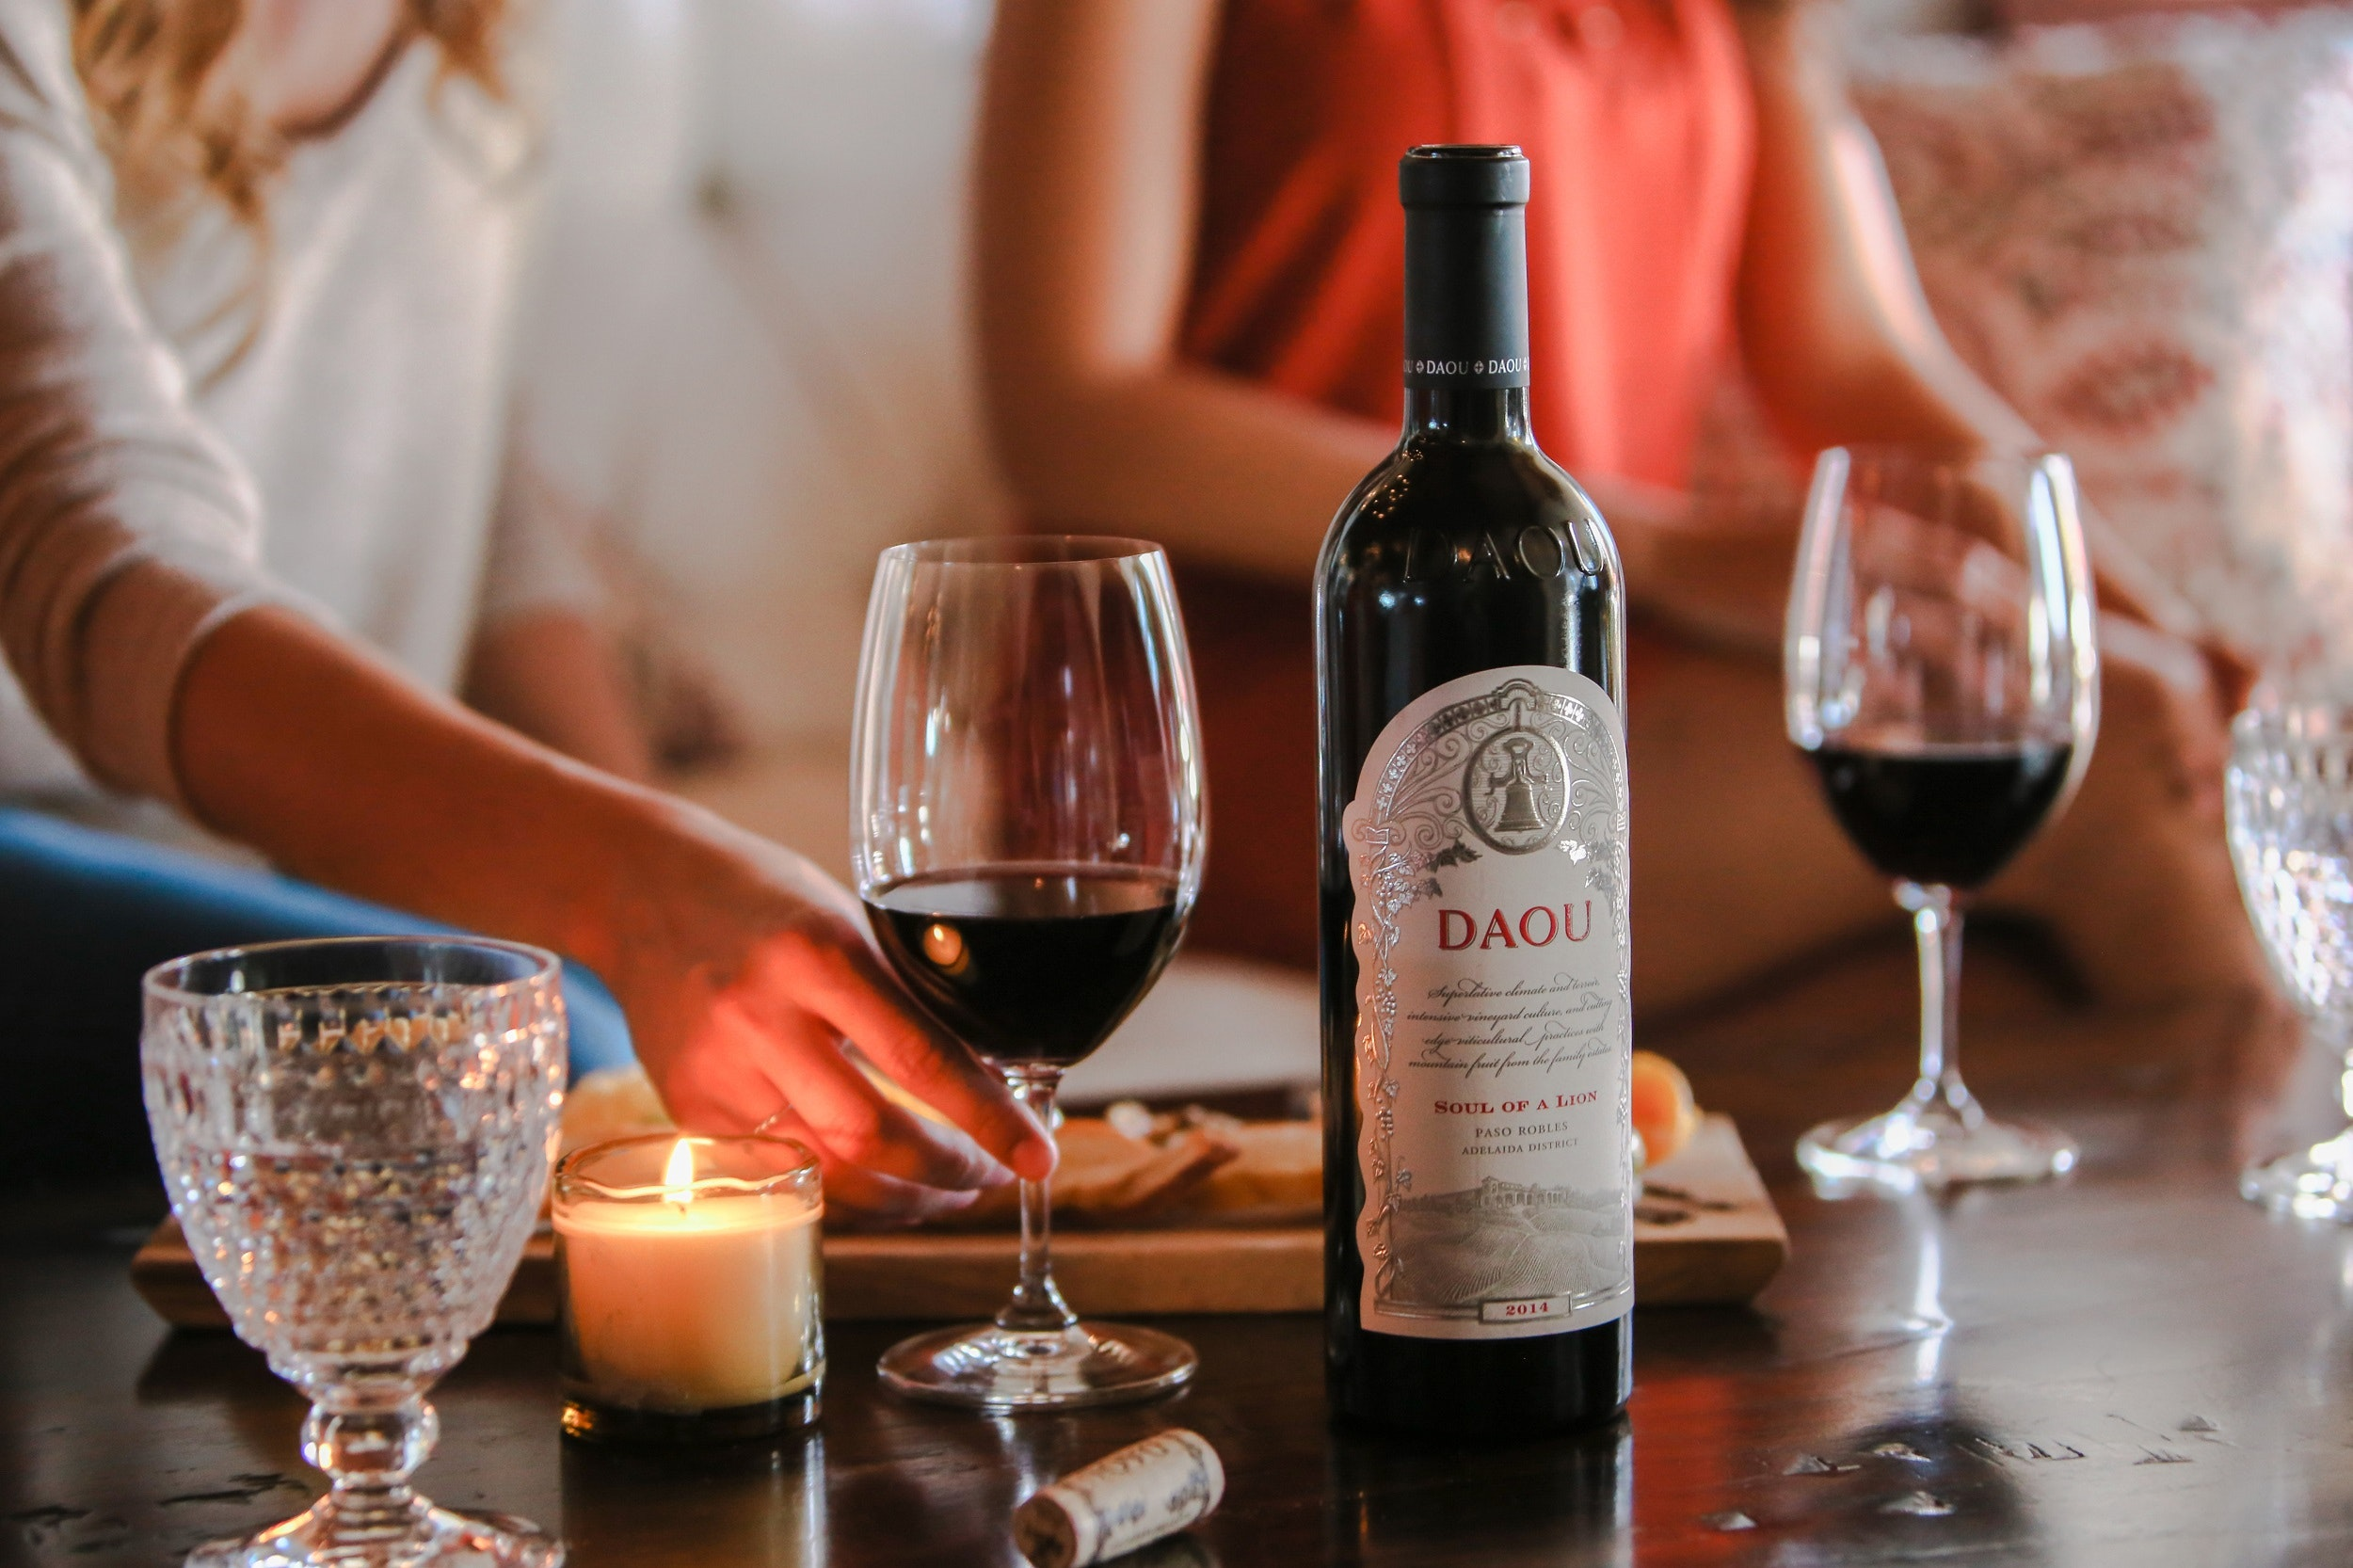 DAOU's lavish Spanish-style tasting room pairs pours of quality Bordeaux grapes with sweeping hilltop views.